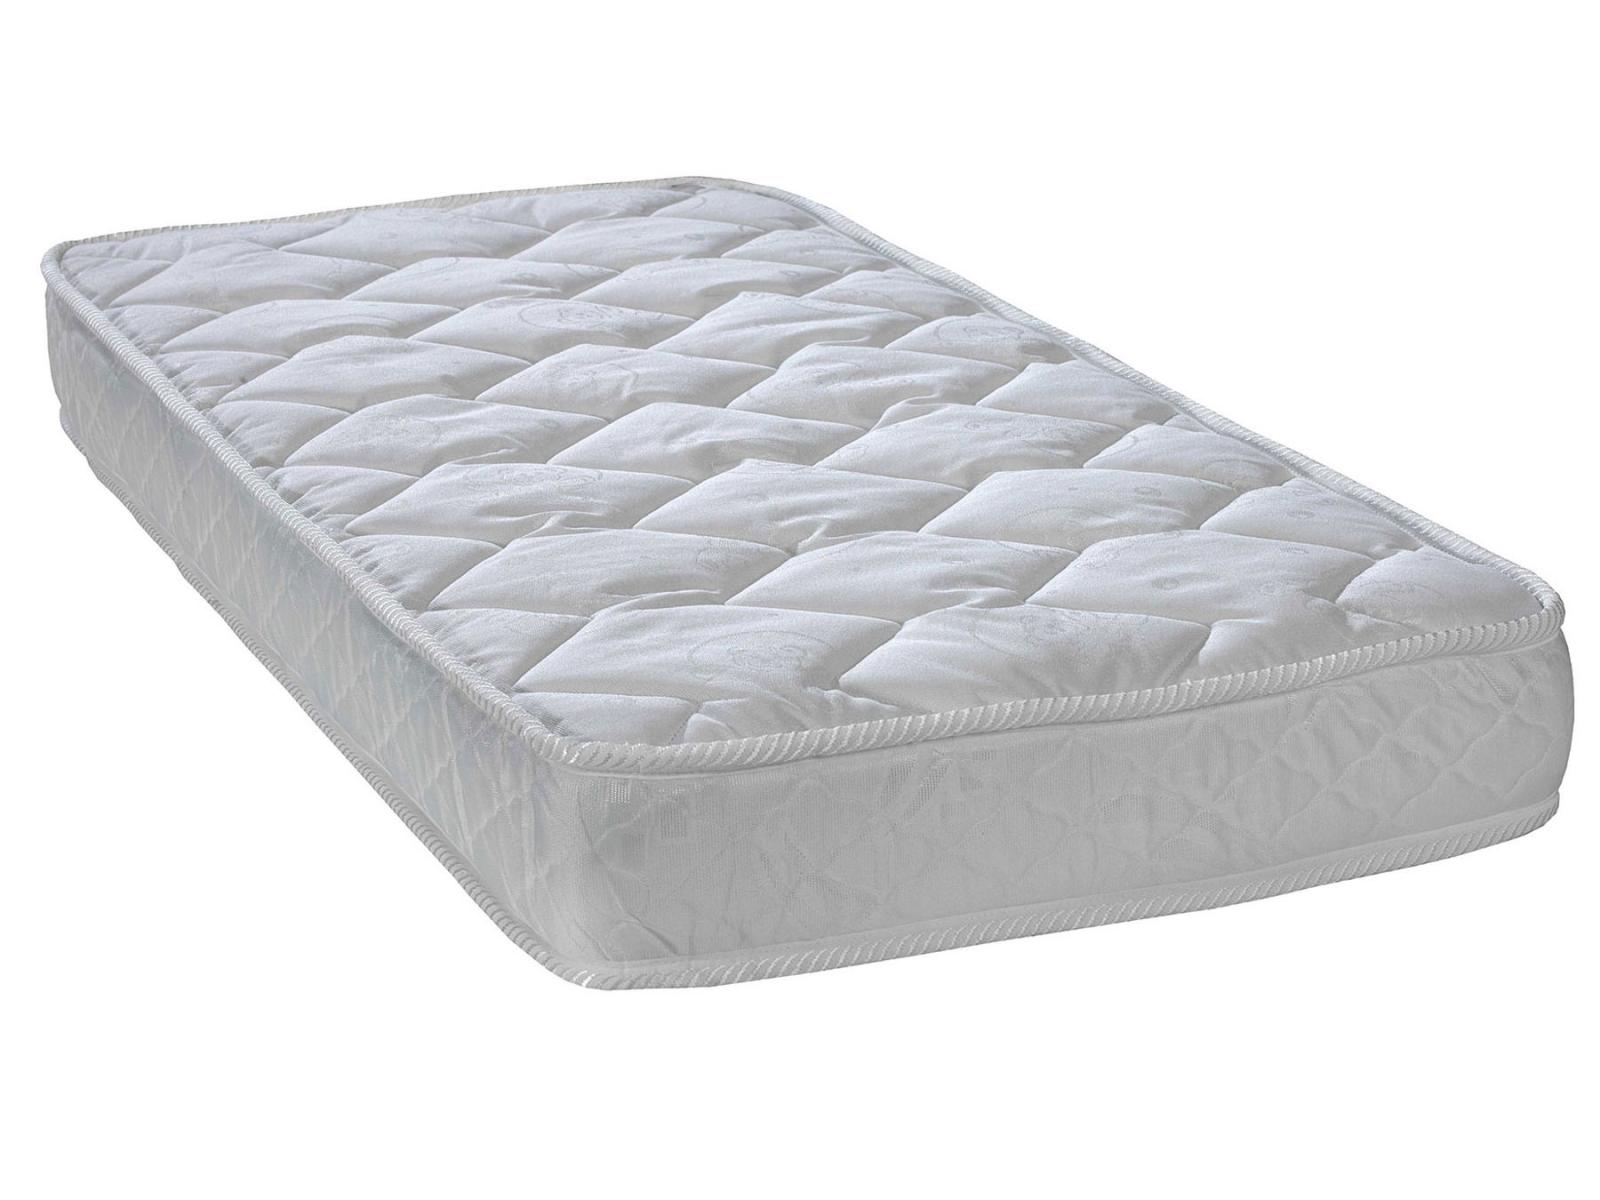 Duvatex matelas d 39 enfant en mousse polyether de premi re qualit 20 kg m - Matelas gonflable de qualite ...